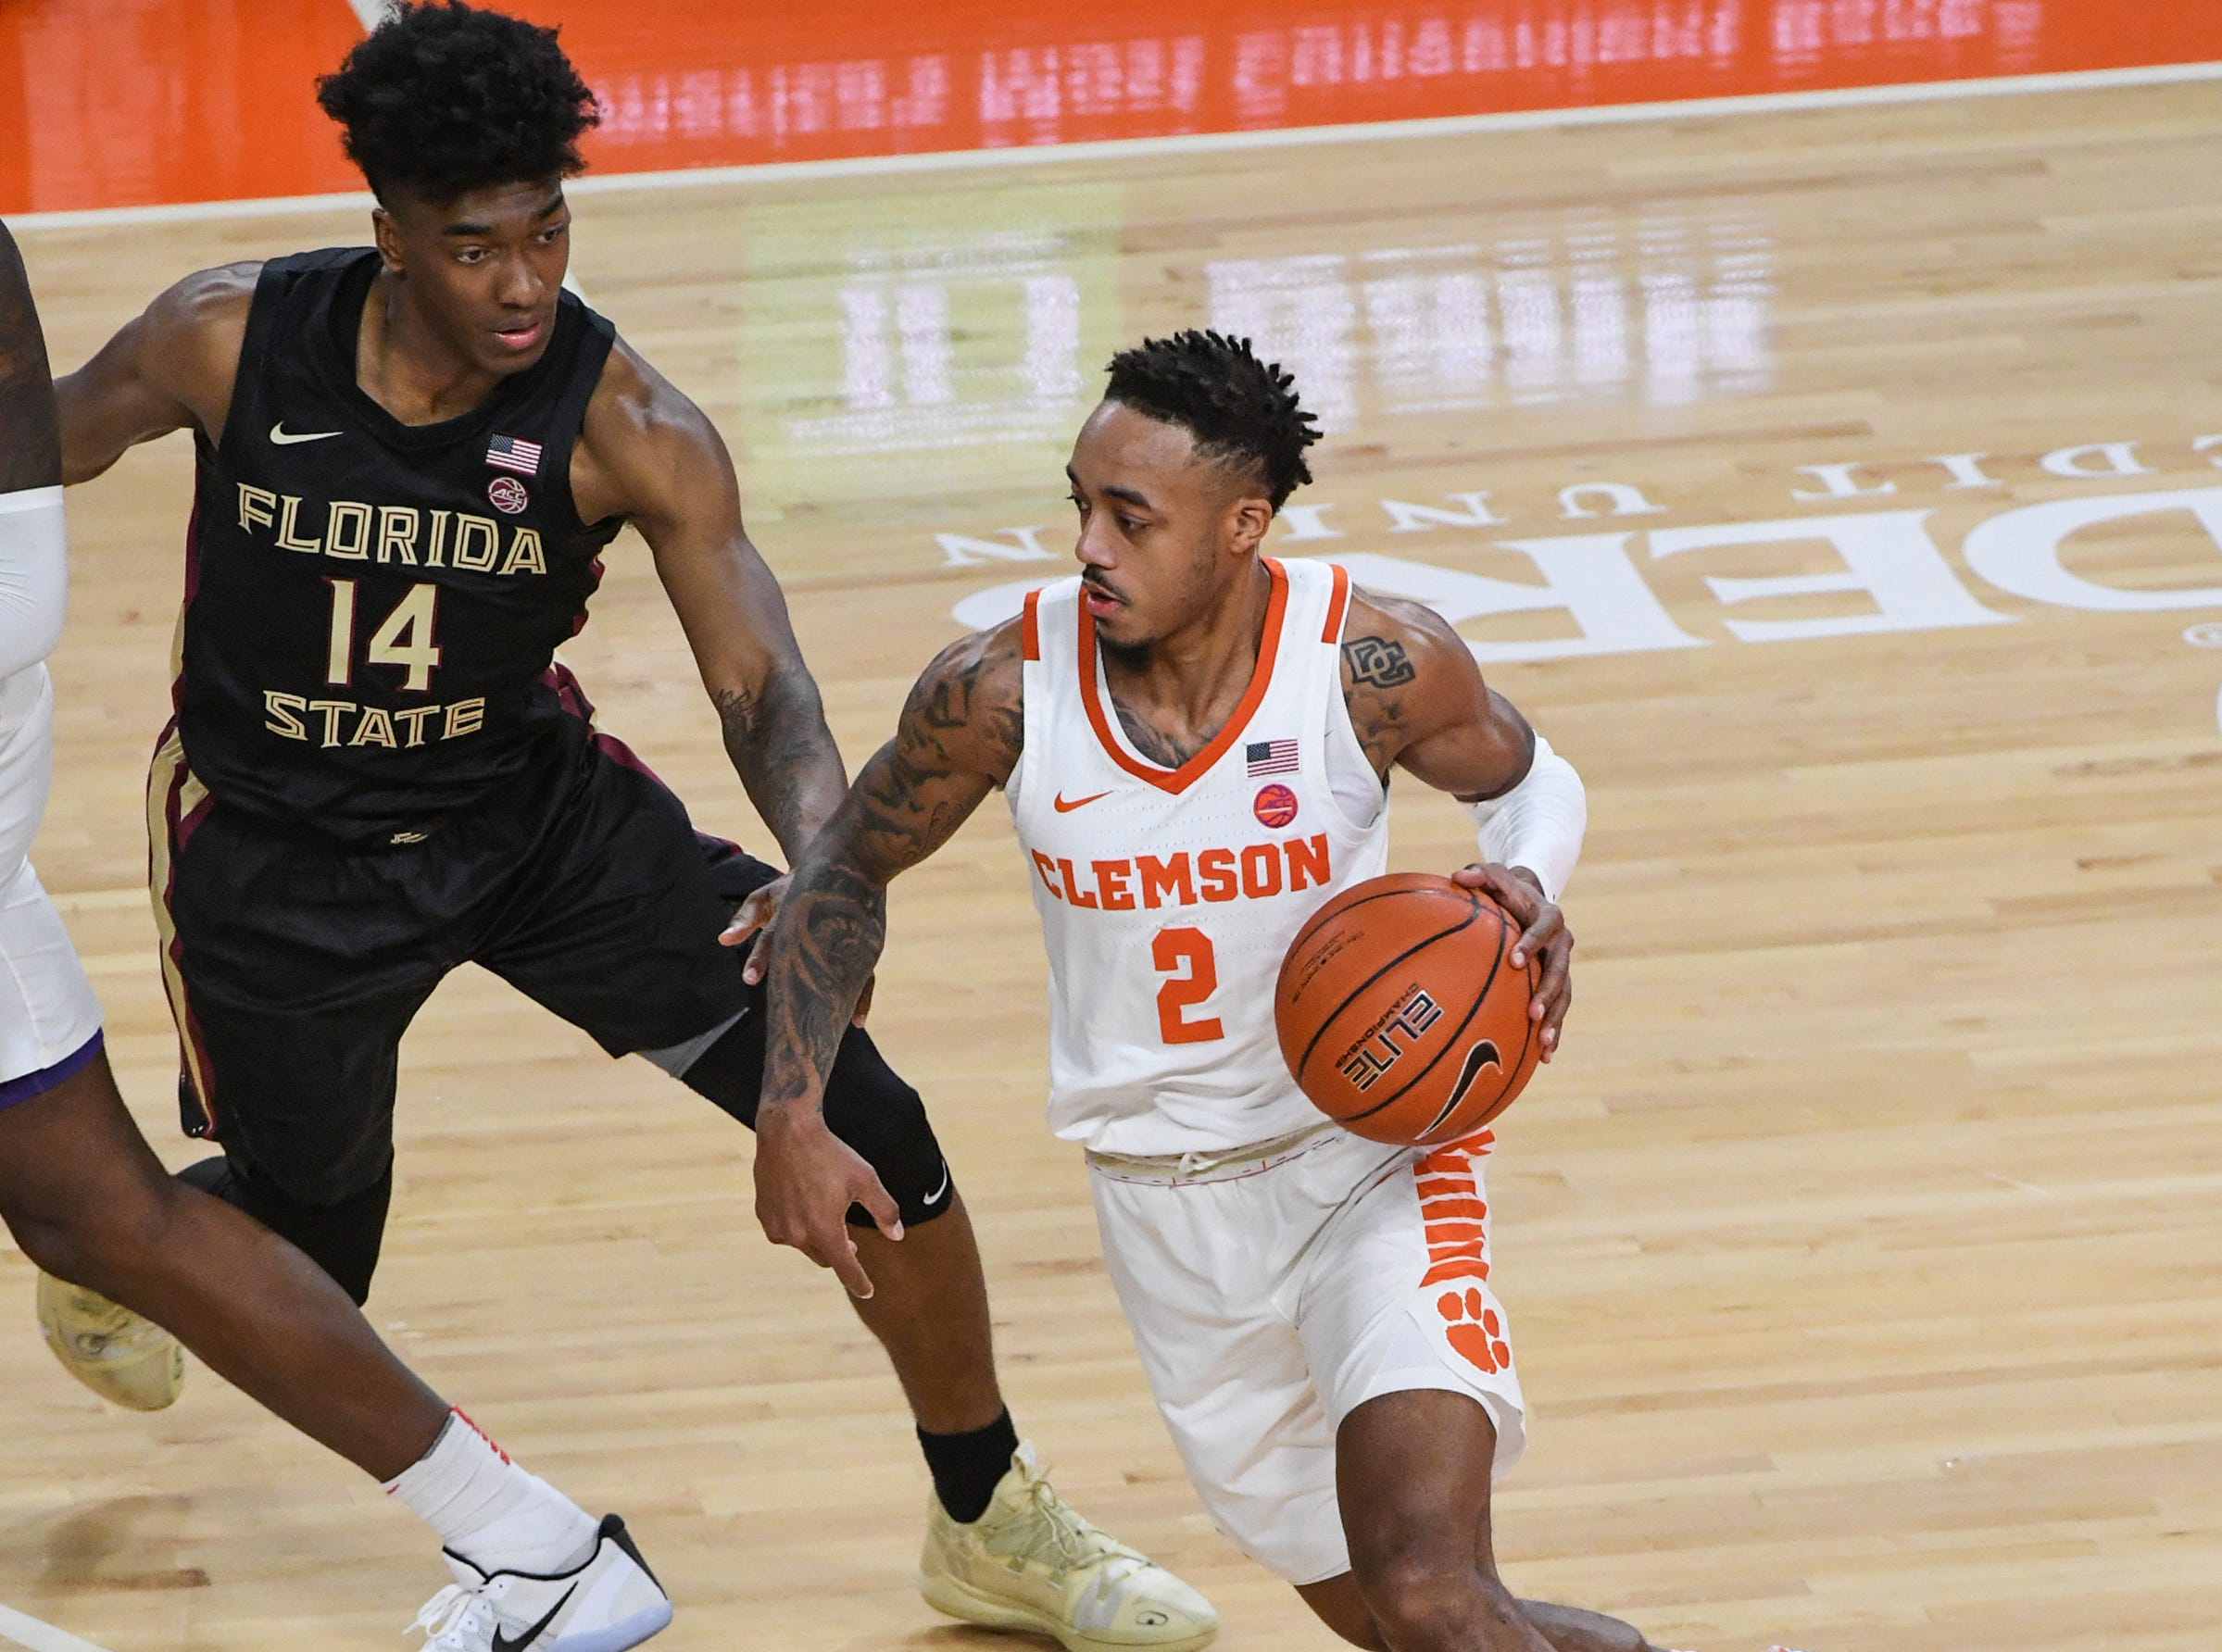 Clemson guard Marcquise Reed (2) dribbles bear Florida State guard Terence Mann(14) during the first half at Littlejohn Coliseum in Clemson Tuesday, February 19, 2019.